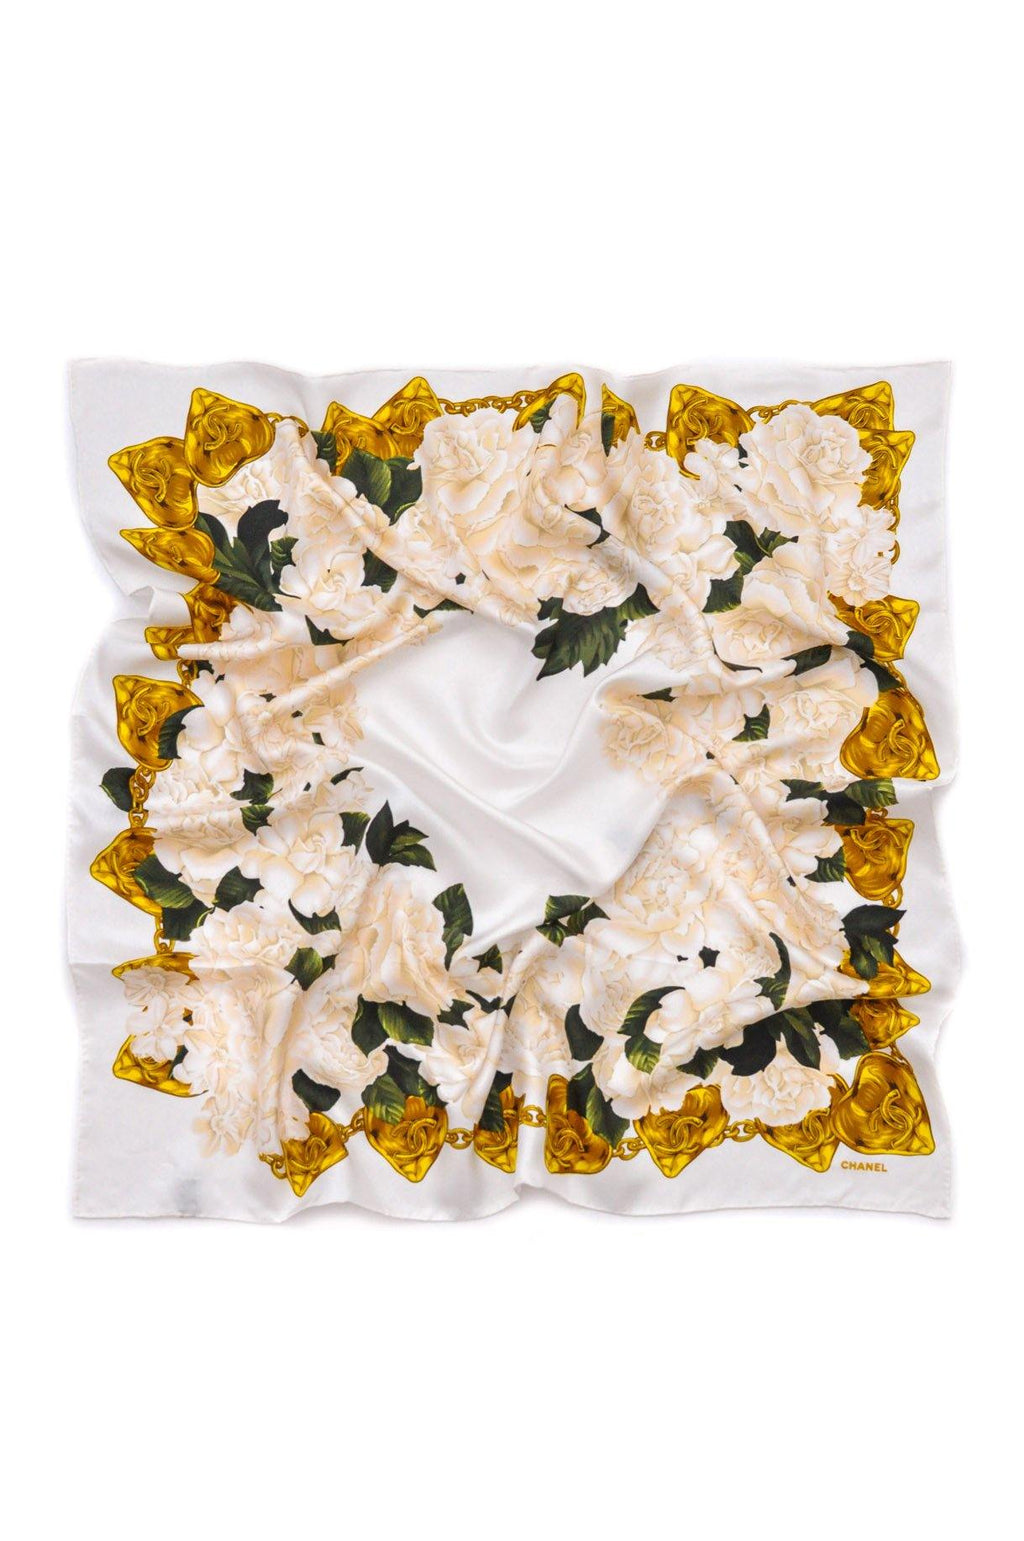 Chanel Heart & White Floral Scarf